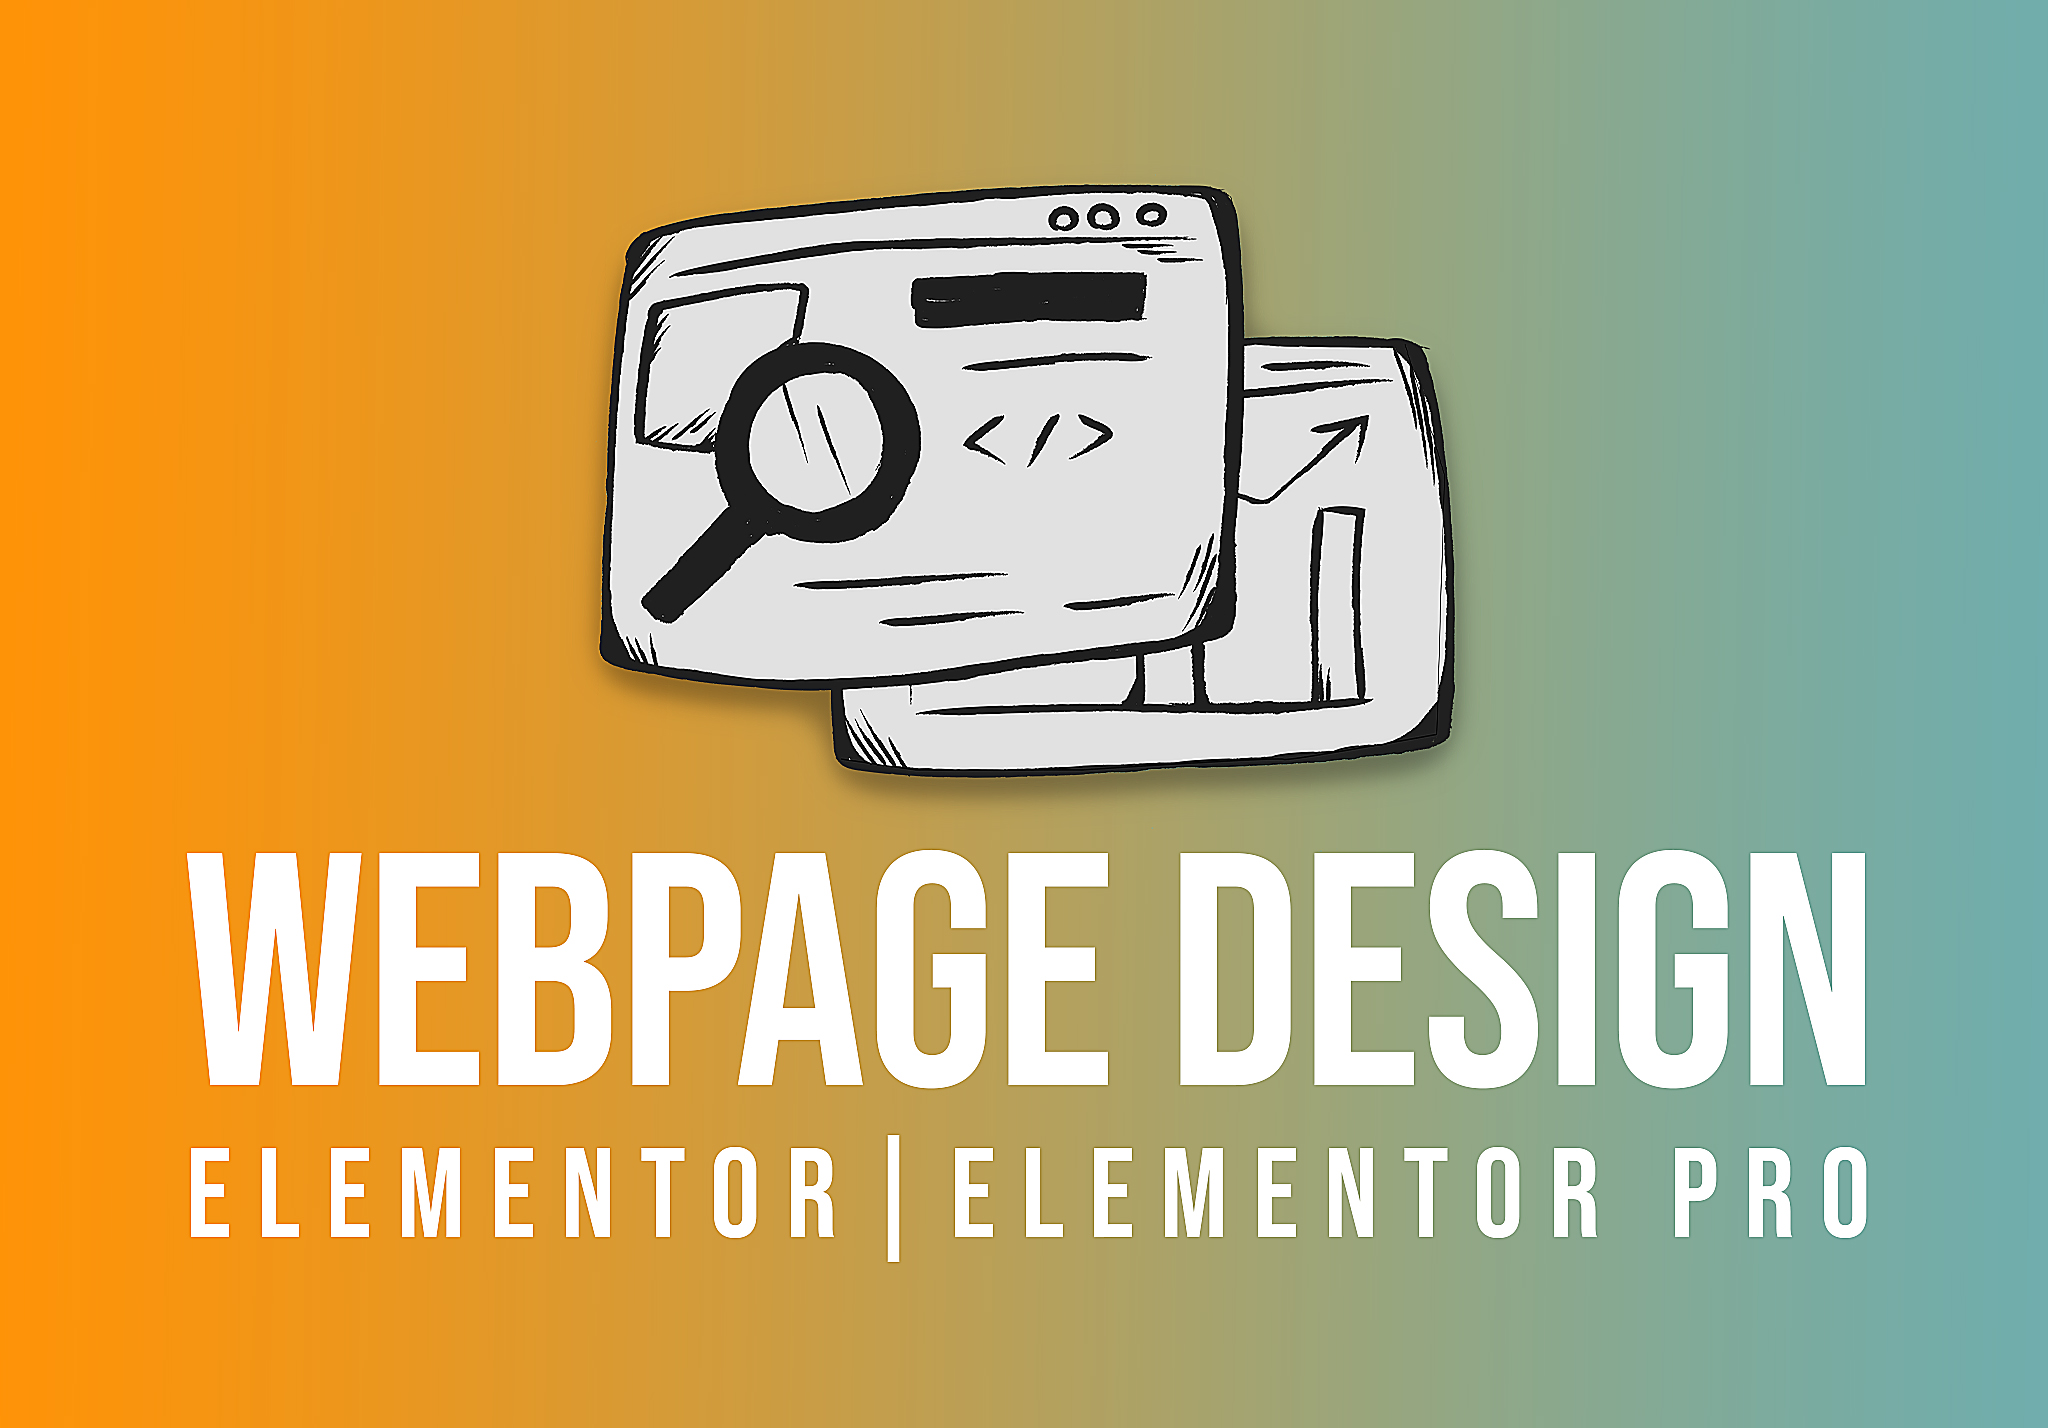 Responsive redesign and clone wordpress website webpage using elementor pro